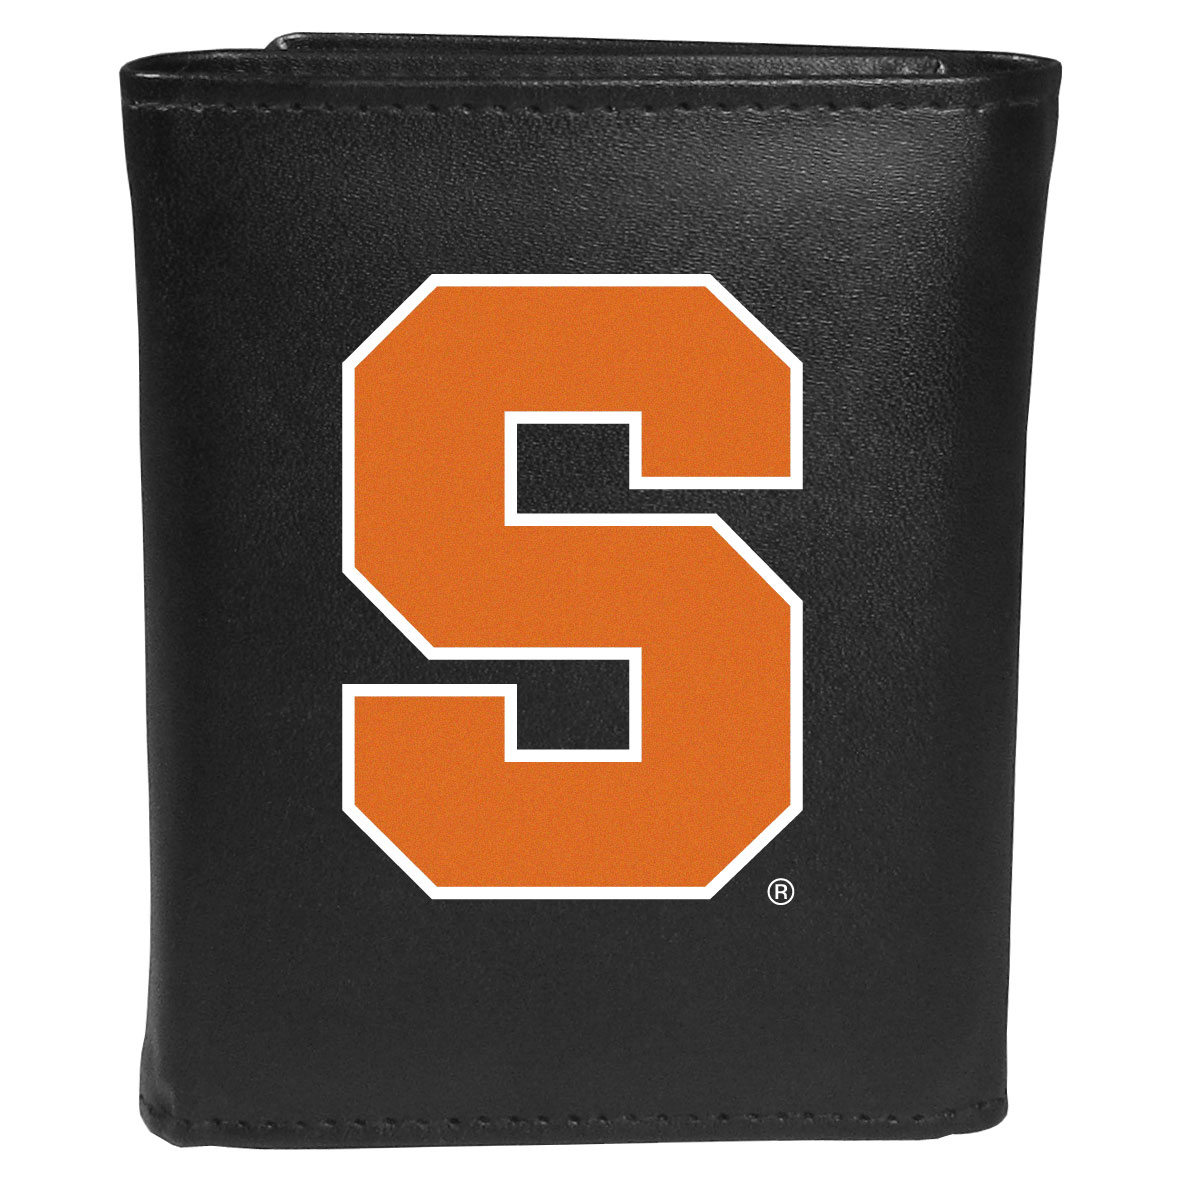 Syracuse Orange Leather Tri-fold Wallet, Large Logo - Our classic fine leather tri-fold wallet is meticulously crafted with genuine leather that will age beautifully so you will have a quality wallet for years to come. This is fan apparel at its finest. The wallet is packed with organizational  features; lots of credit card slots, large billfold pocket, and a window ID slot. The front of the wallet features an extra large Syracuse Orange printed logo.